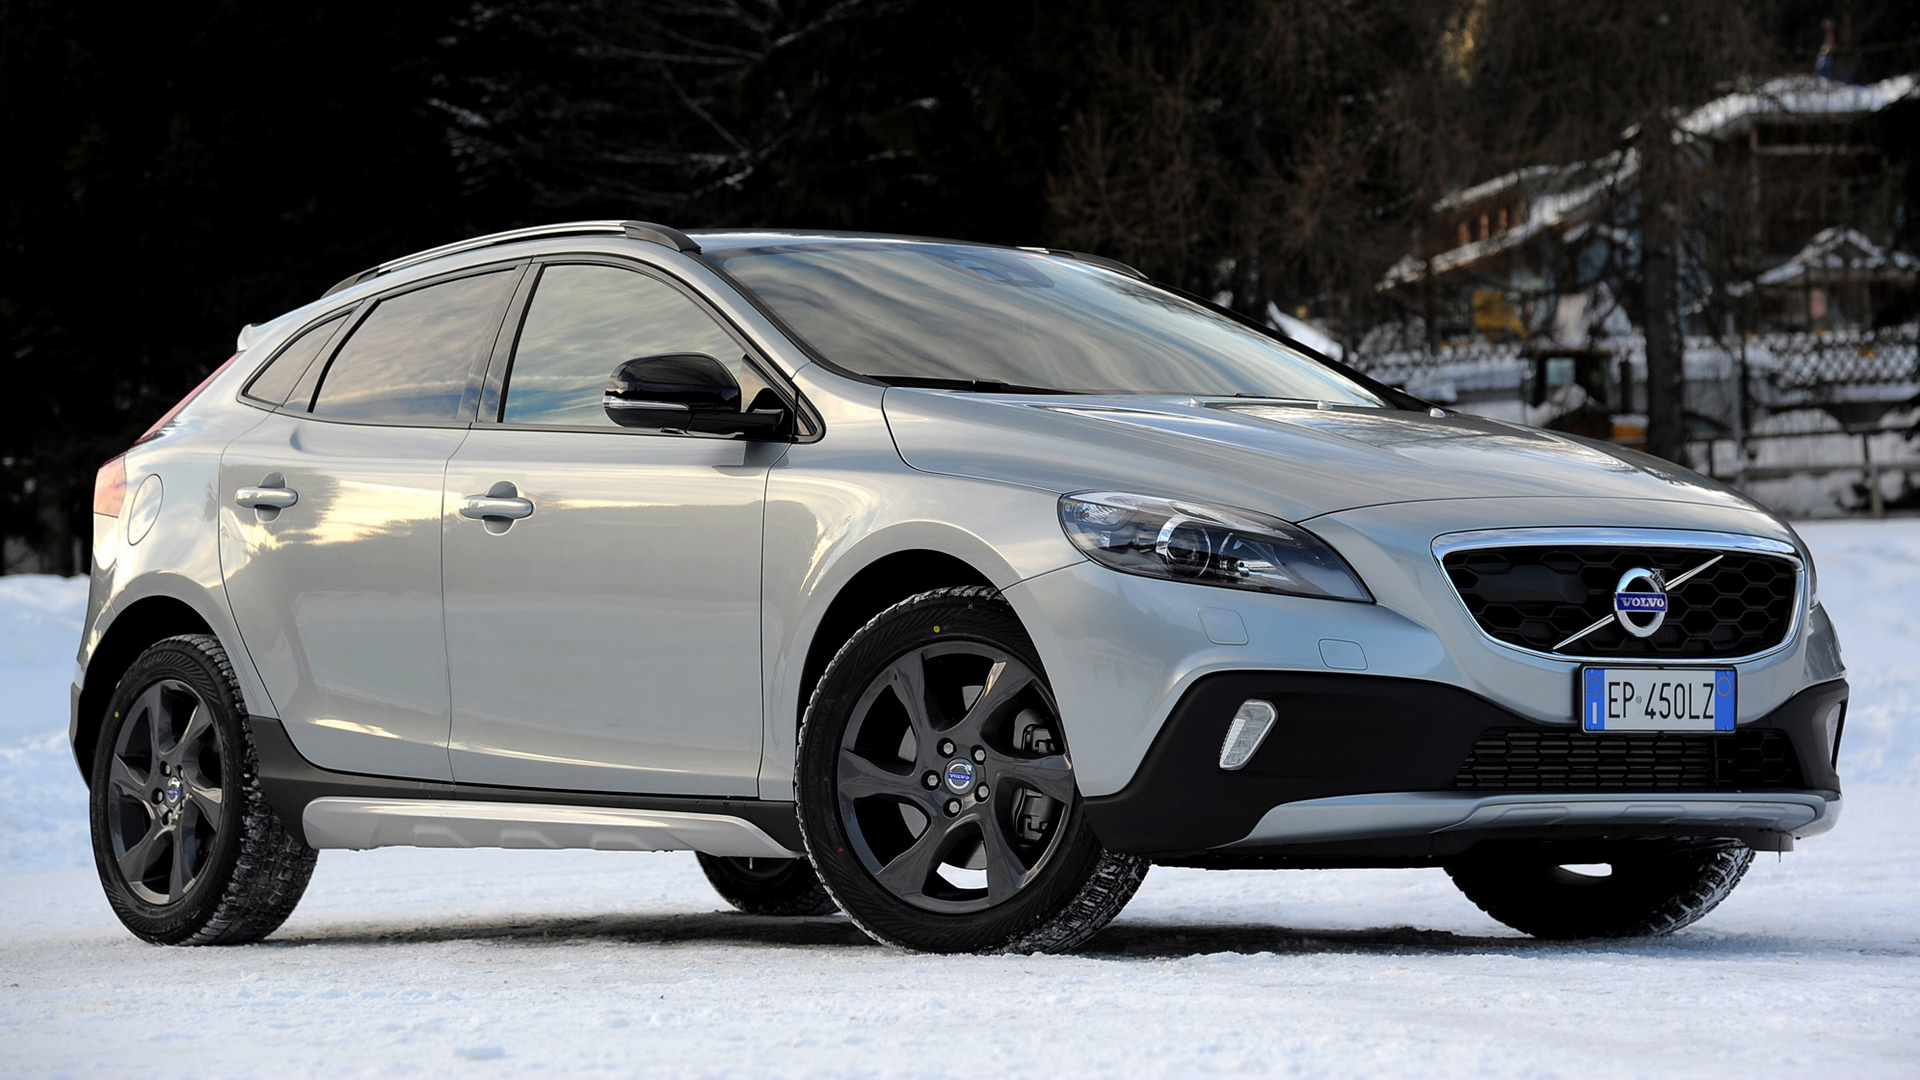 volvo v40 cross country 2012 wallpapers and hd images car pixel. Black Bedroom Furniture Sets. Home Design Ideas